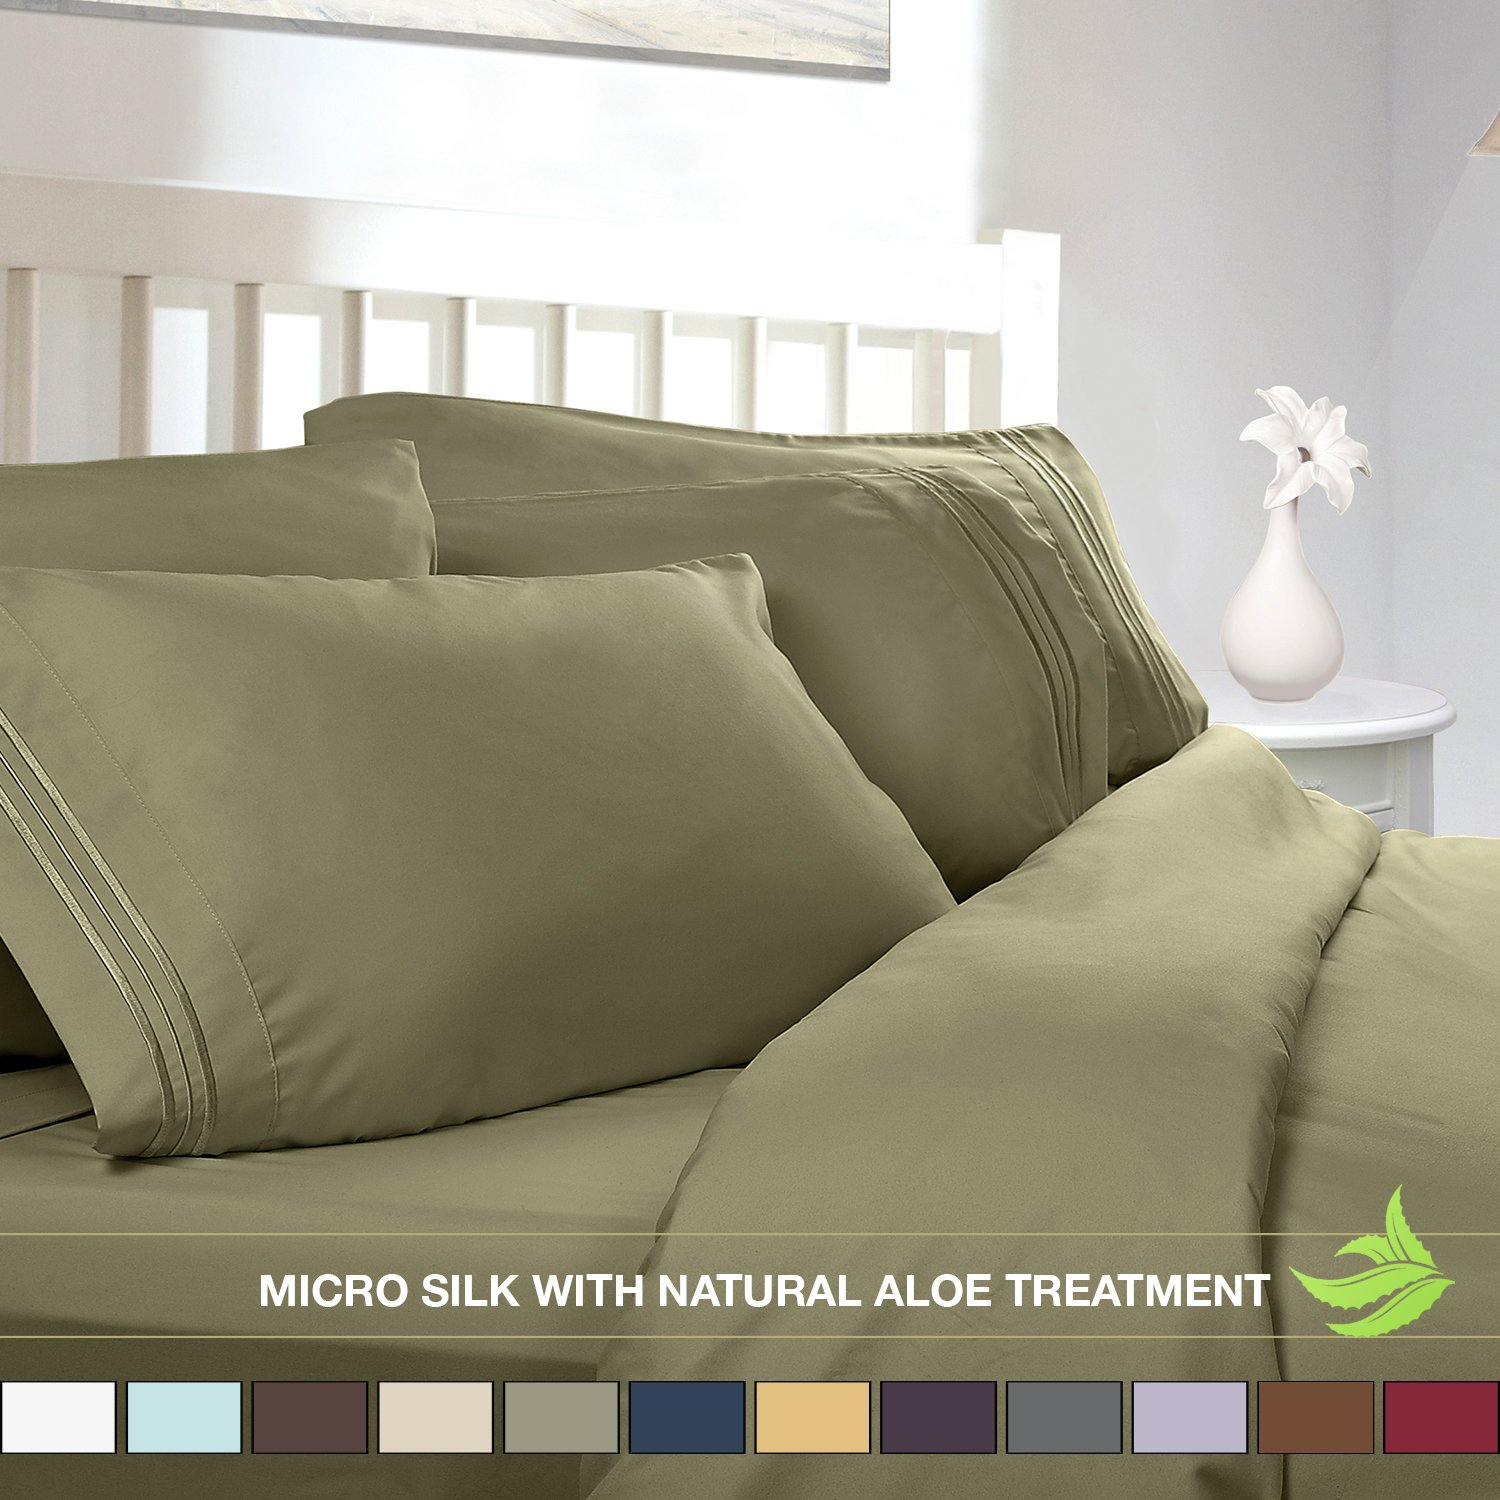 Luxury Bed Sheet Set - Soft MICRO SILK Sheets - Full Size, Sage Green - with Pure Natural ALOE VERA Skin Soothing Moisturizing Treatment - Healthy Calming Properties Will Make You Have A Relaxed and Refreshed Sleep - Highest Quality with Strong Stitching Will Make Your Sheet Set Last For Many Years - Get the Luxurious Look and Silky Feel No Other Sheet Set can Offer - Clara Clark